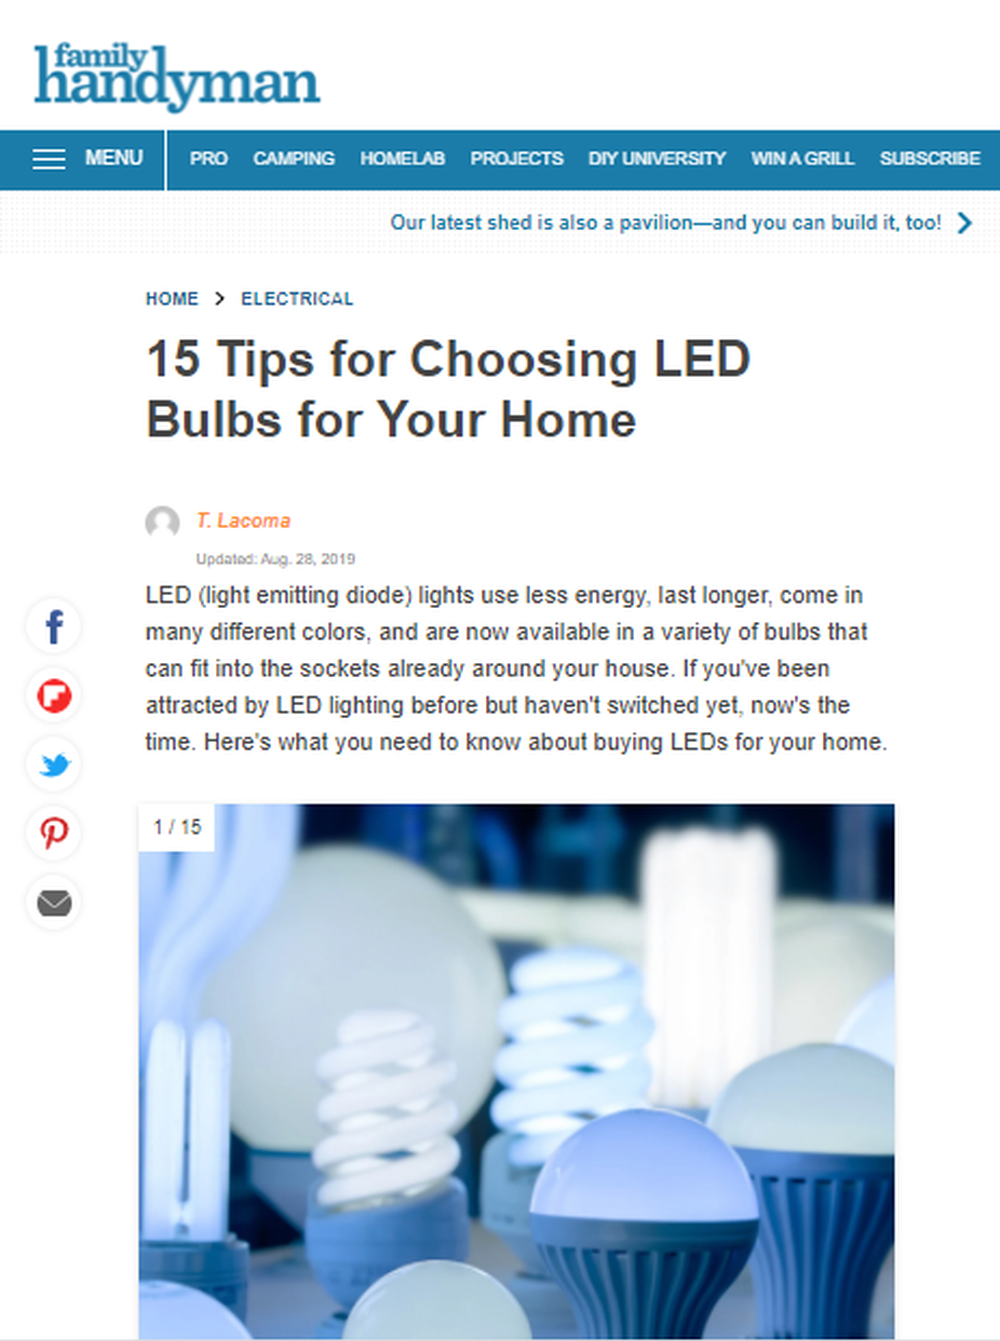 Tips-for-Choosing-LED-Light-Bulbs-for-Your-Home-The-Family-Handyman.png